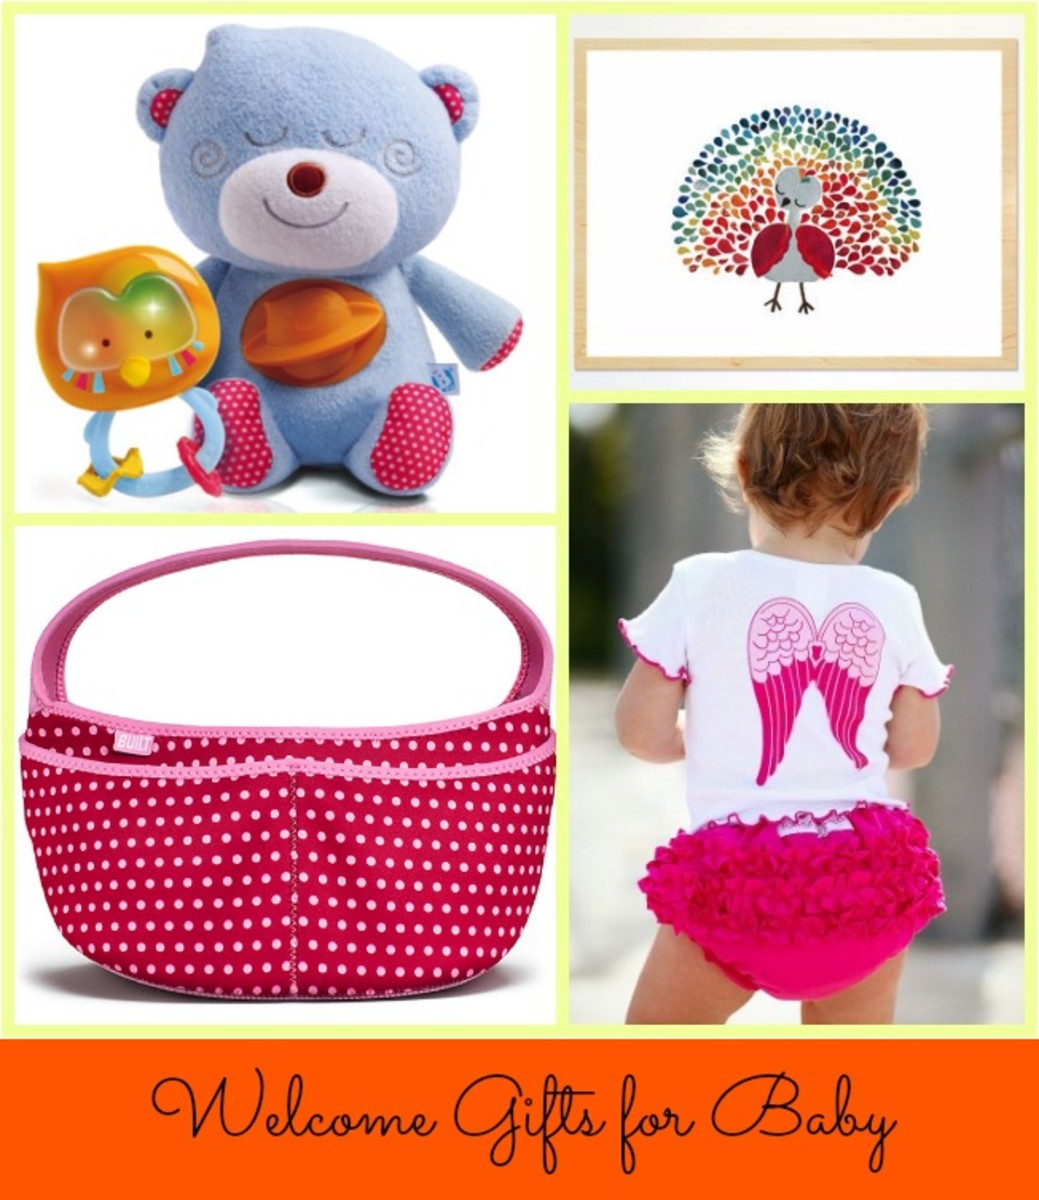 bkids, child to cherish, rufflebutts, BuiltNY, personalized gifts for baby, baby gifts